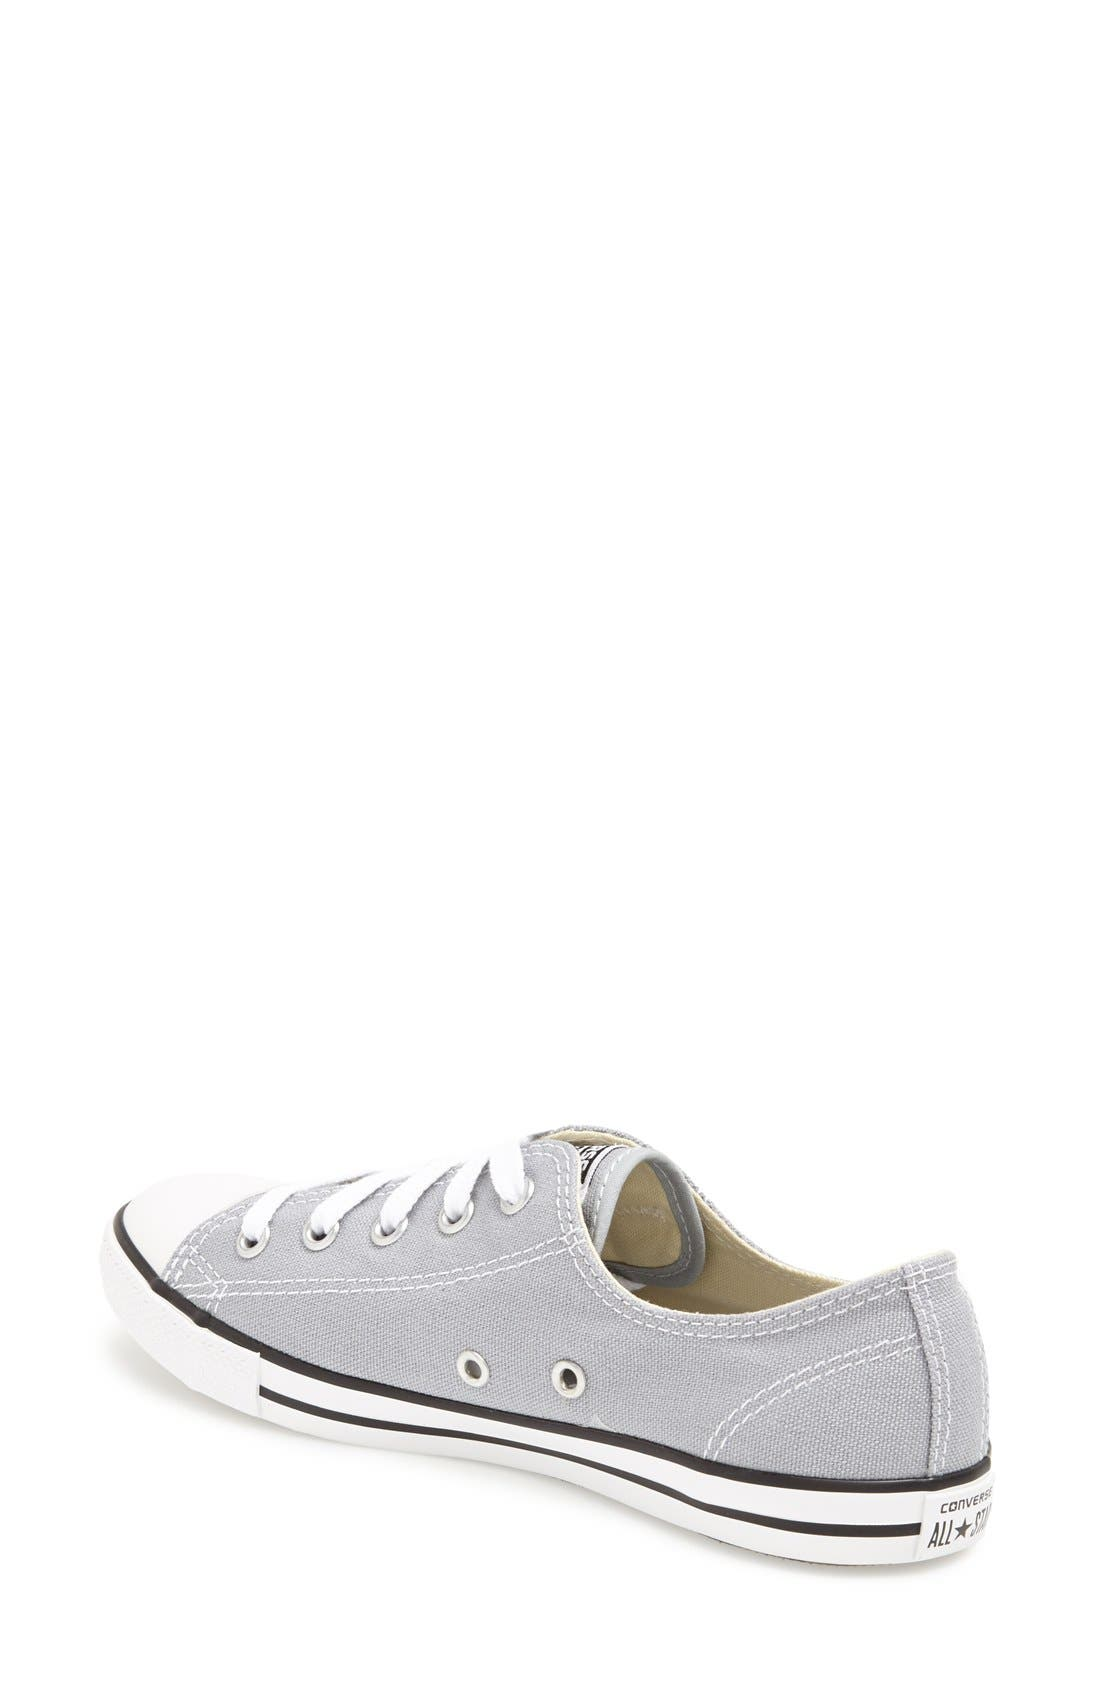 ,                             Chuck Taylor<sup>®</sup> 'Dainty' Sneaker,                             Alternate thumbnail 12, color,                             050